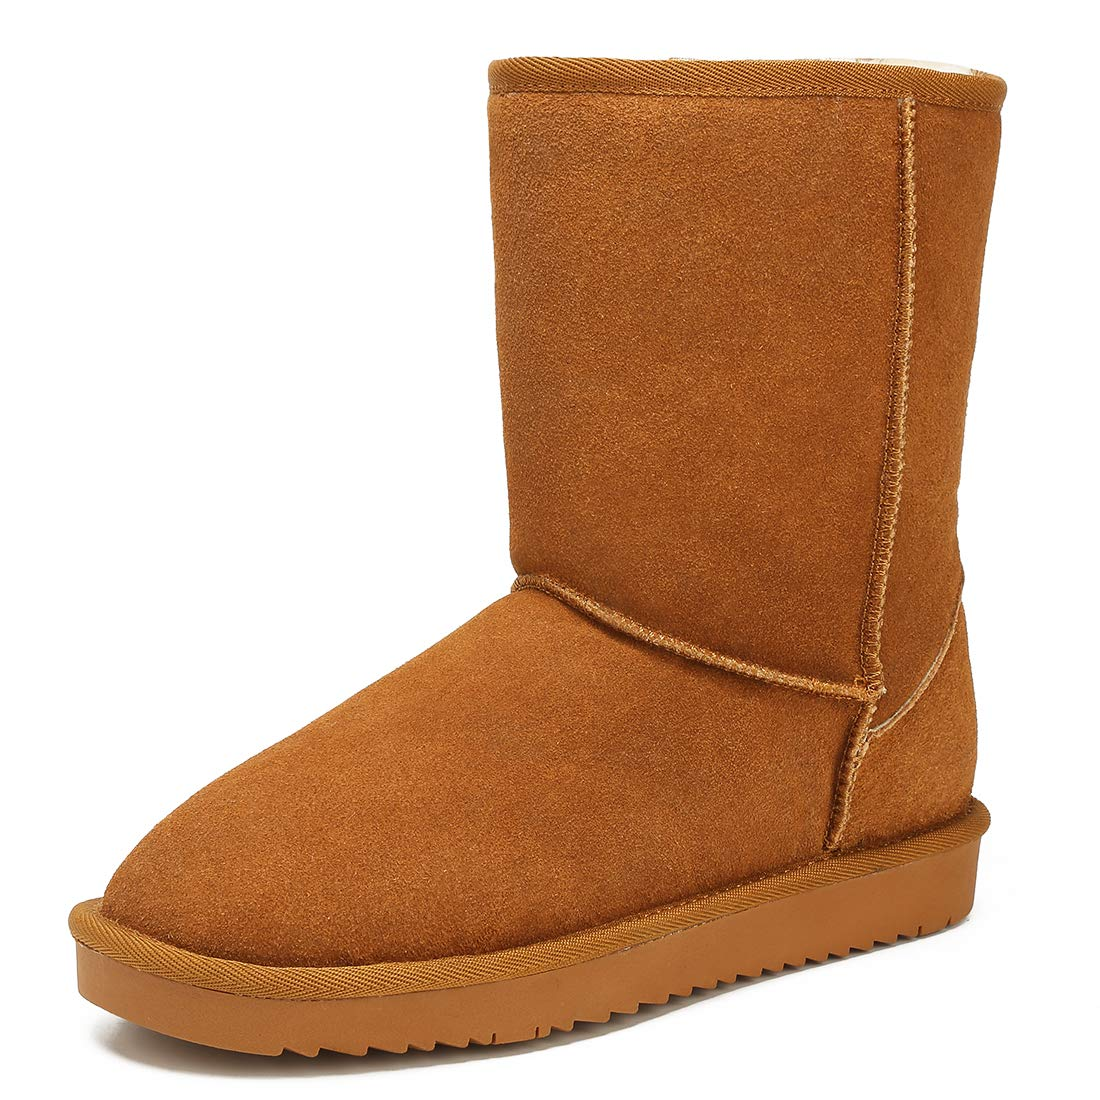 SEMARY Womens Classic Snow Boots Warm Genuine Suede Leather Winter Short Boot Flat Anti-Slip Fur Lining Mid-Calf Outdoor Slip on Boots